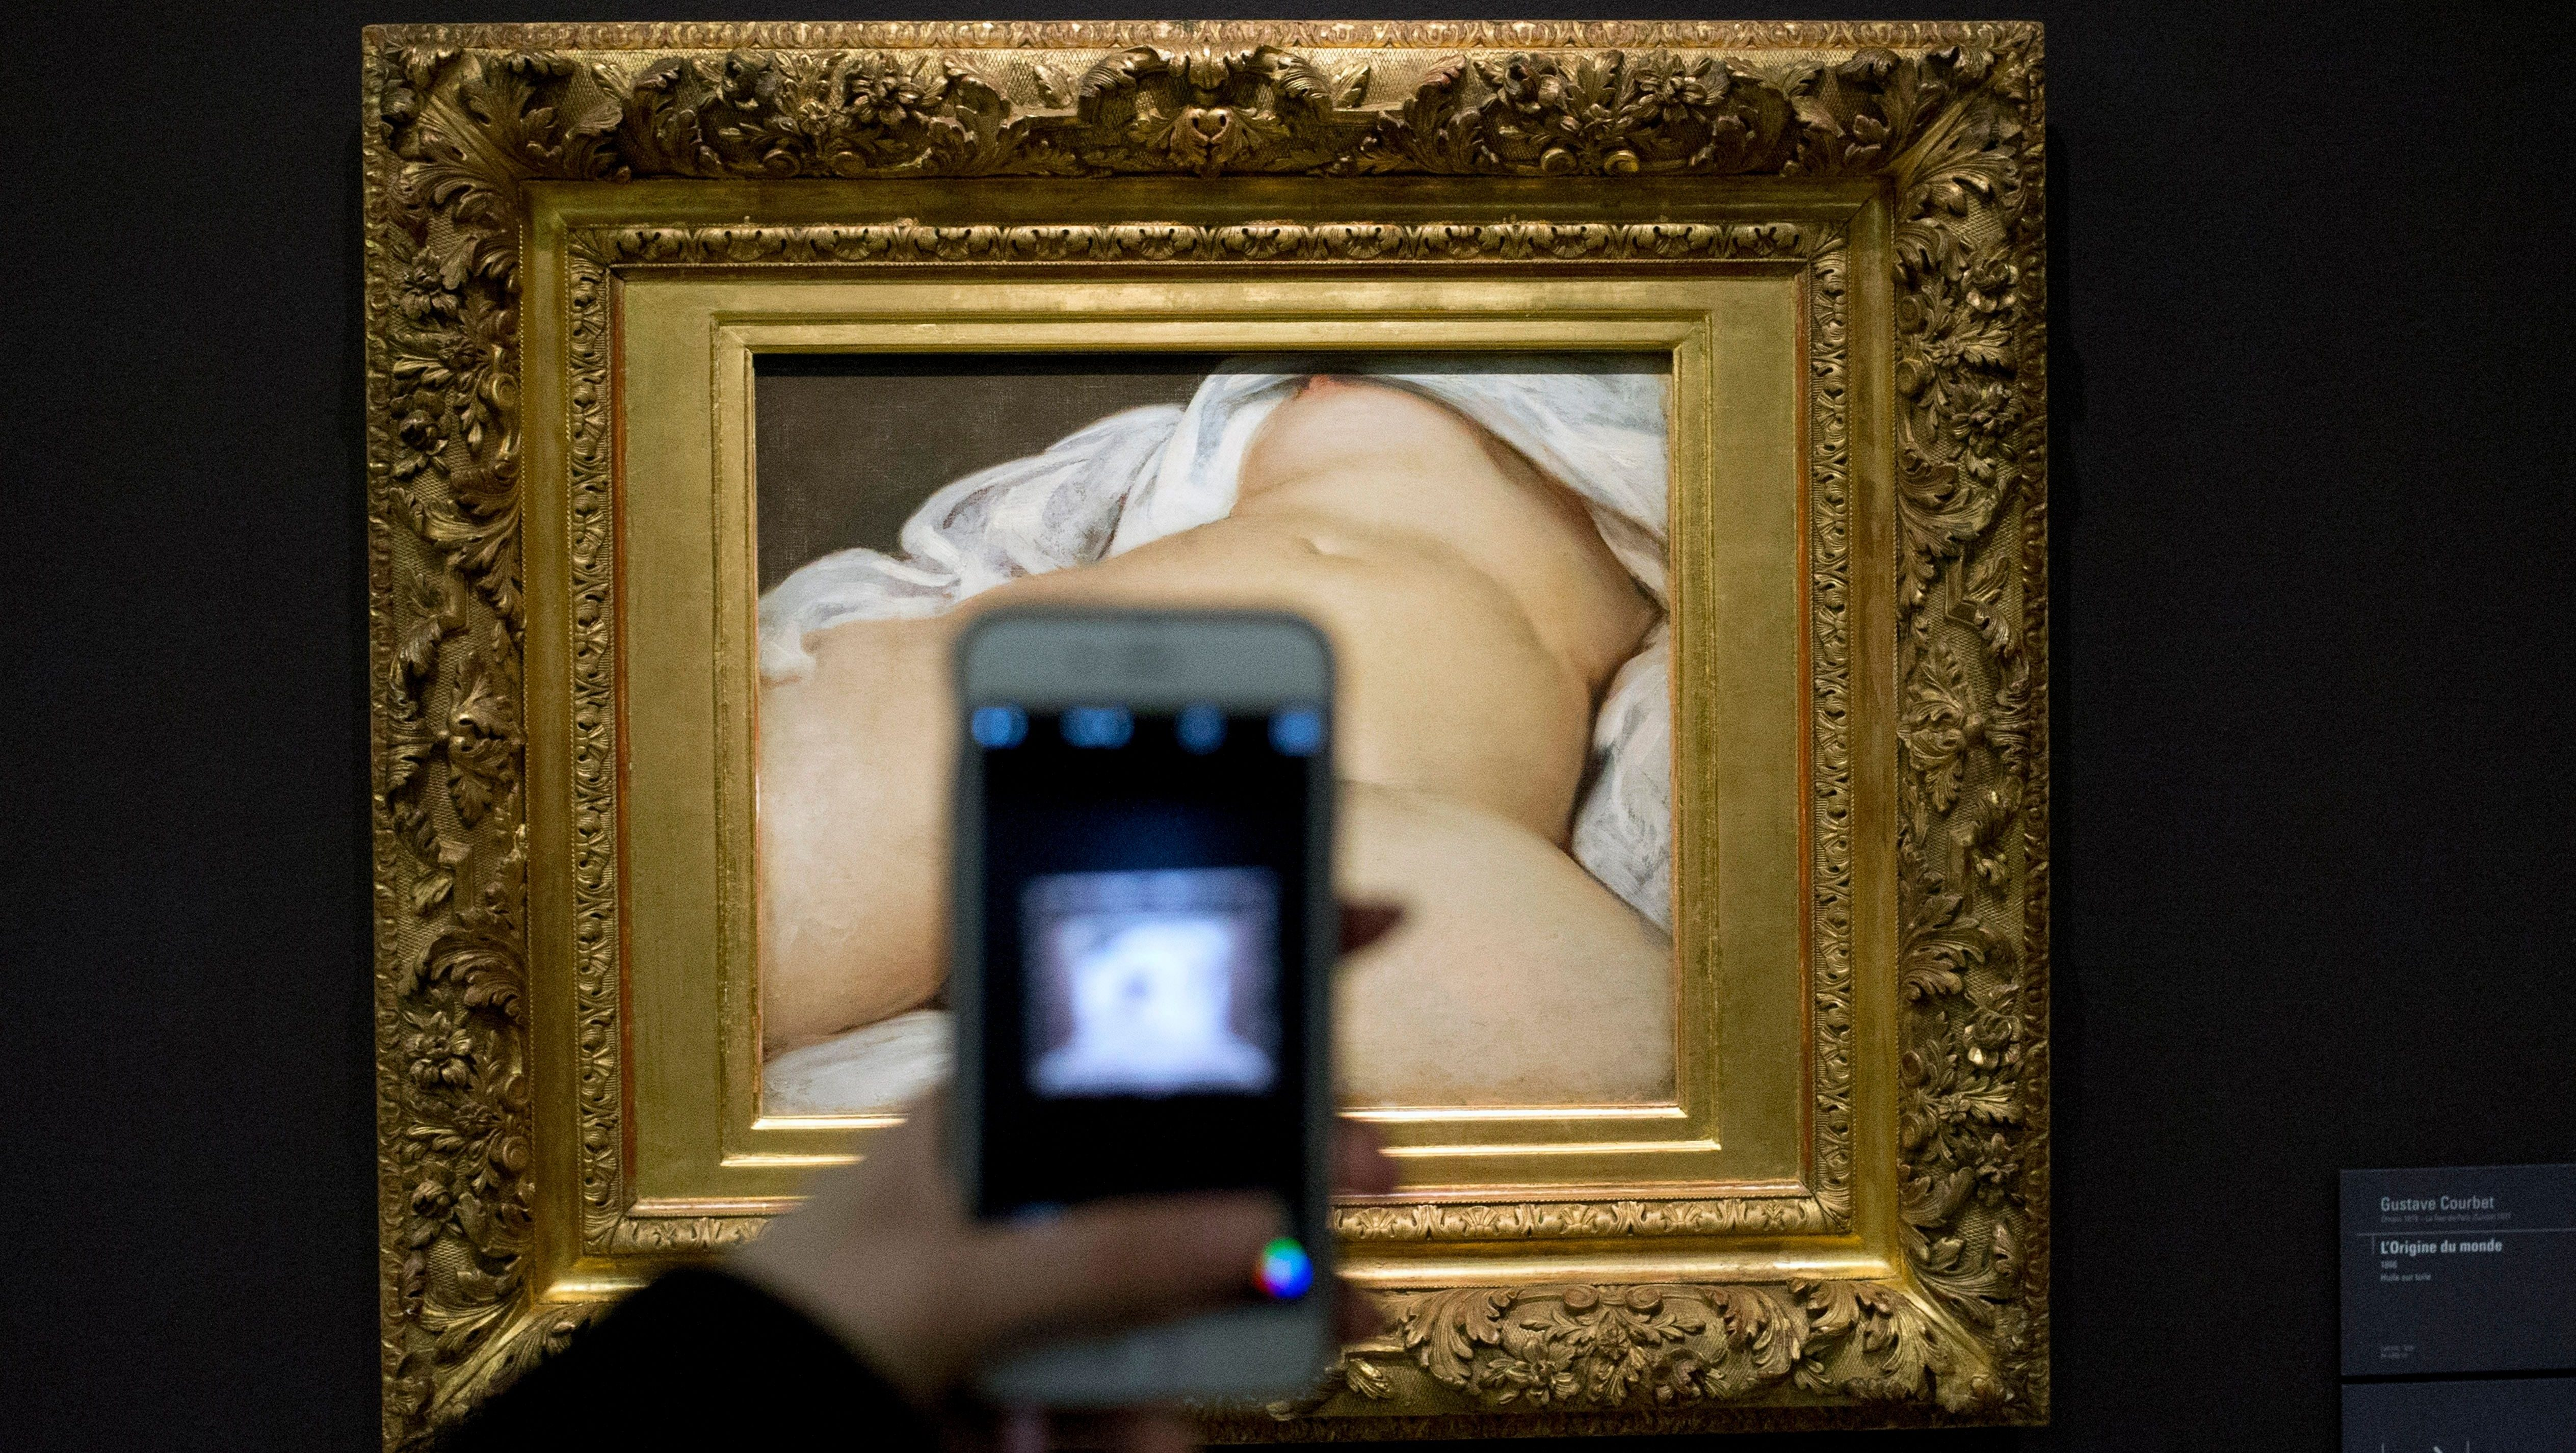 """FILE - In this Feb.12 2016 file photo, a visitor takes a picture of Gustave Courbet's 1866 """"The Origin of the World,"""" at Musee d'Orsay museum, in Paris. A French teacher, whose Facebook account was suspended in 2011 after he posted a photo of a famous 19th-century nude painting, is suing Thursday Feb. 1, 2018 the California-based social network Facebook for alleged """"censorship"""". Frederic Durand-Baissas, a 59-year-old Parisian teacher and art lover, posted a photo of """"The Origin of the World,"""" which depicts female genitalia. (AP Photo/Francois Mori, File)"""